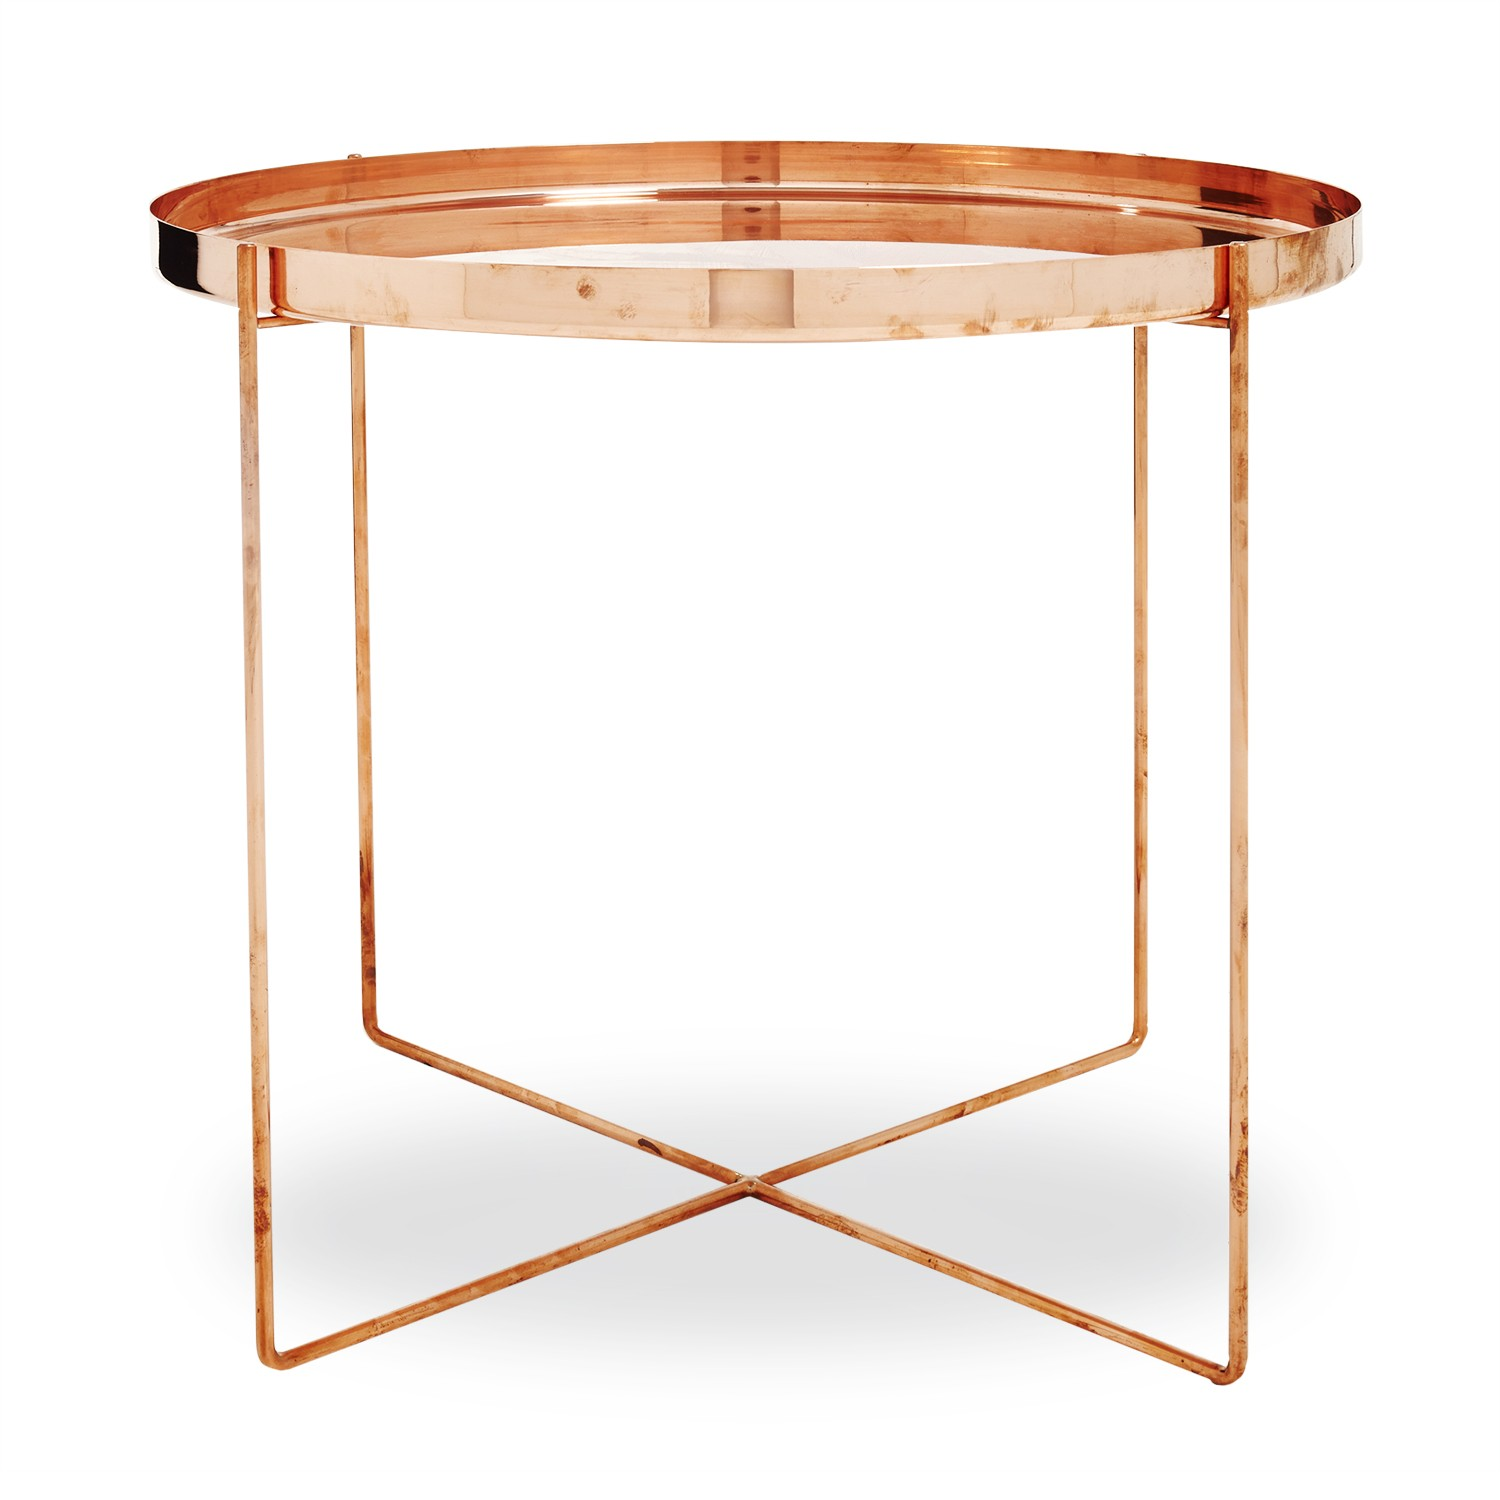 lights appliances luxury copper table lamp with drum shaped black round gold small modern side unique accent shades patio metal nesting tables garden furniture sets home decor